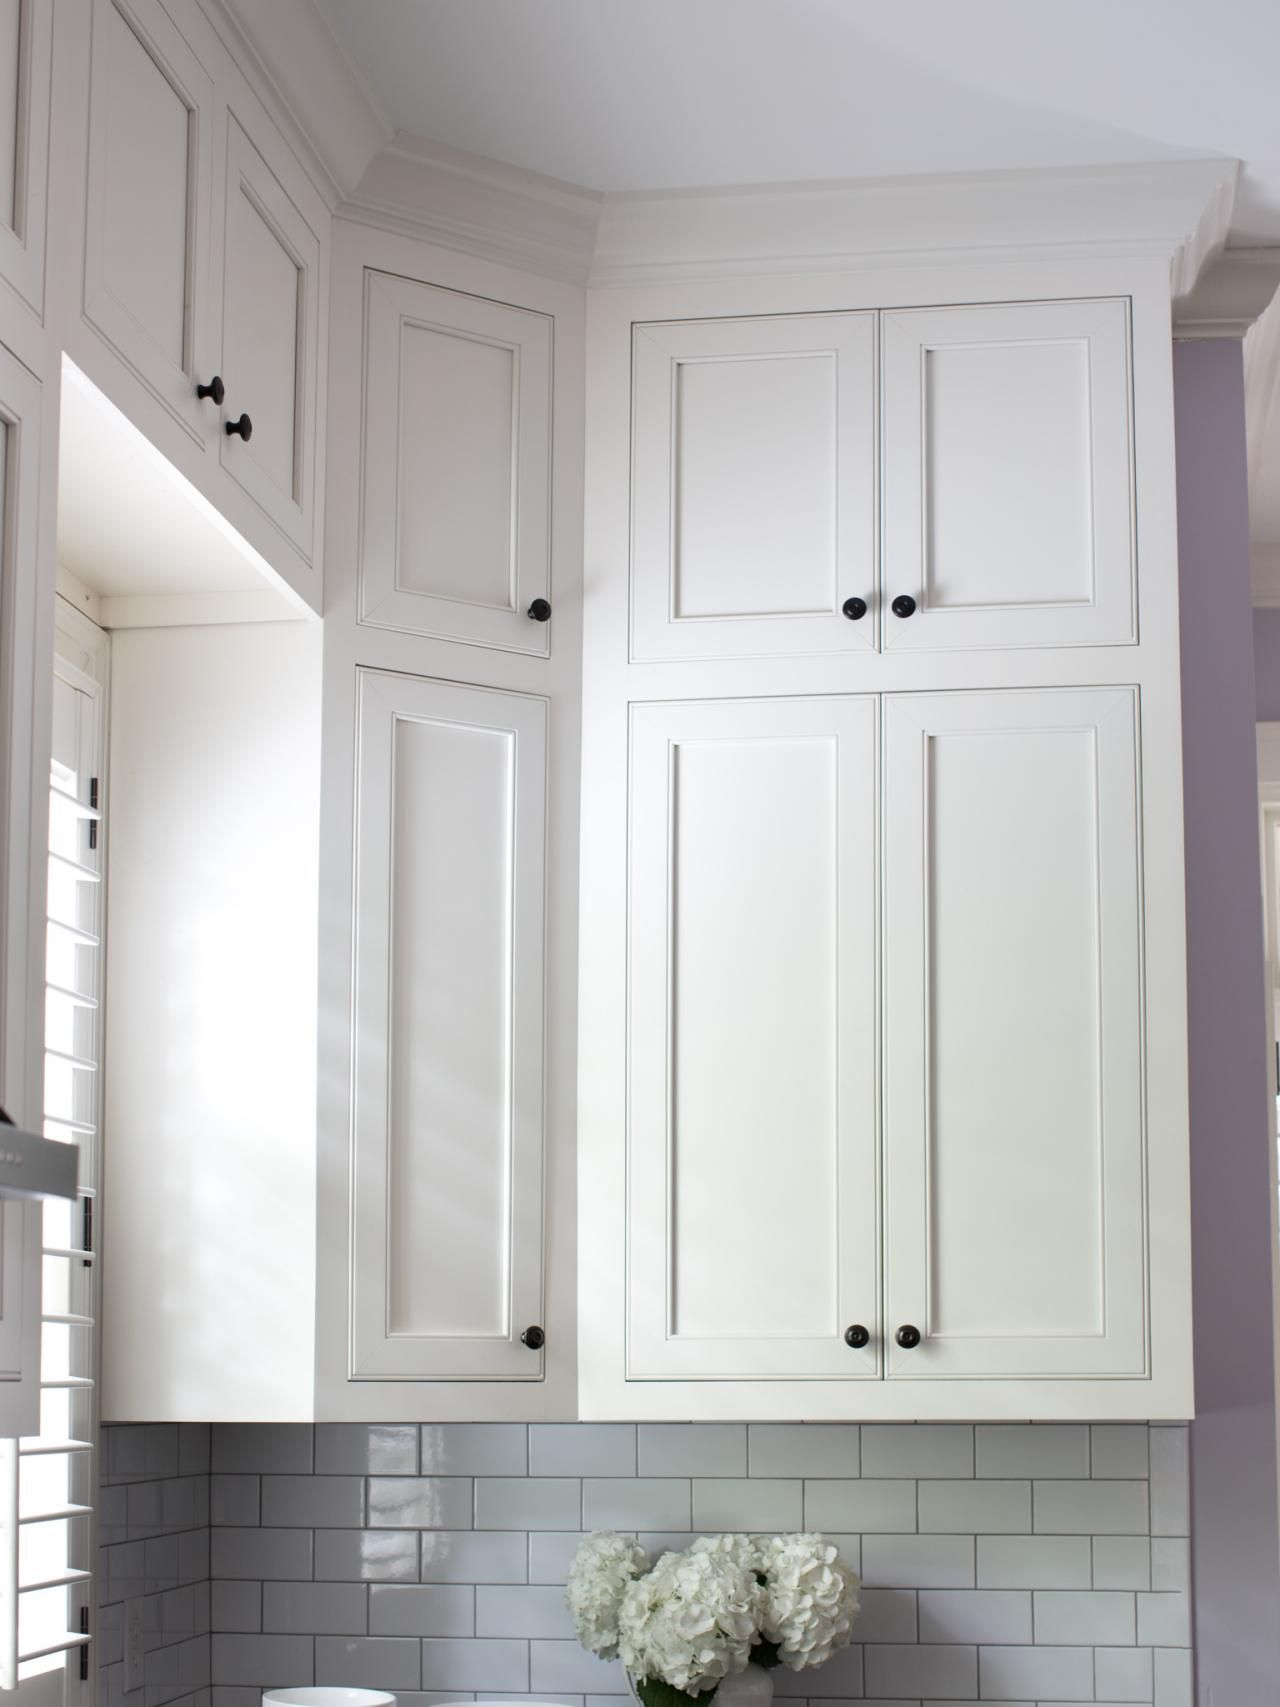 finishing touches to make or break a remodel hgtv kitchen cabinets to ceiling white kitchen on kitchen cabinets to the ceiling id=80301